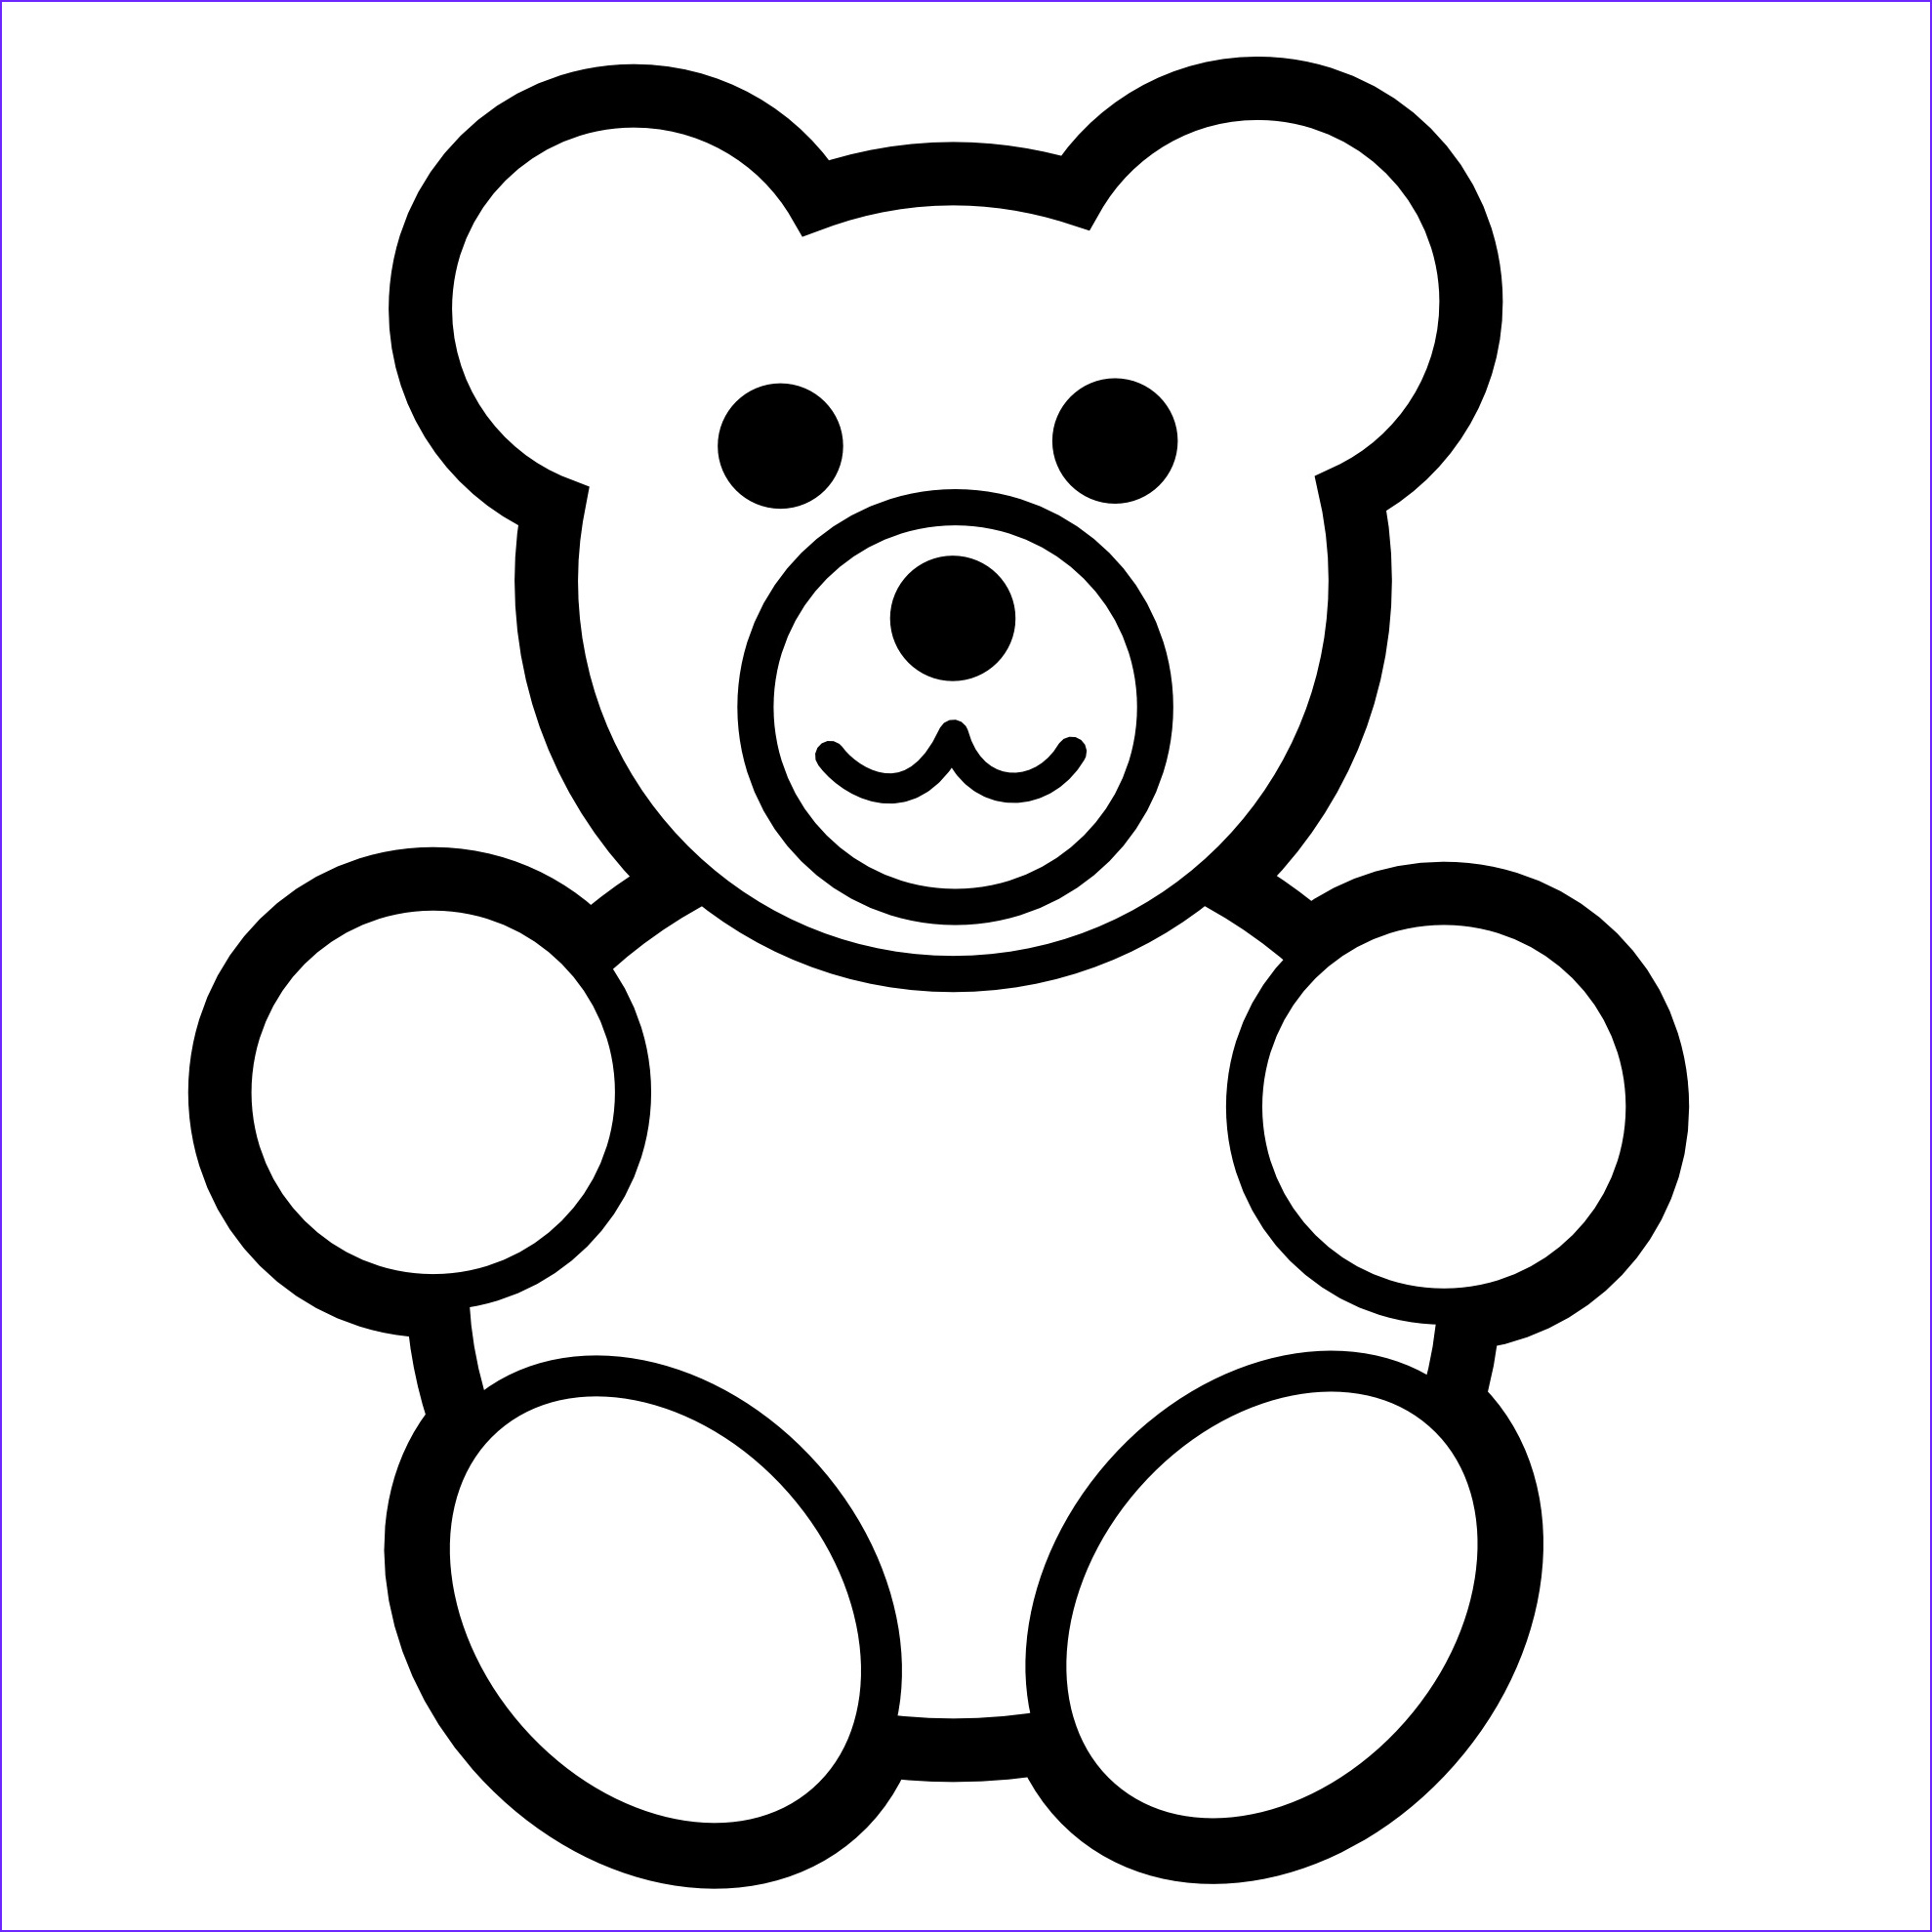 Coloring Page Of Teddy Bears Awesome Photos Free Printable Teddy Bear Coloring Pages for Kids